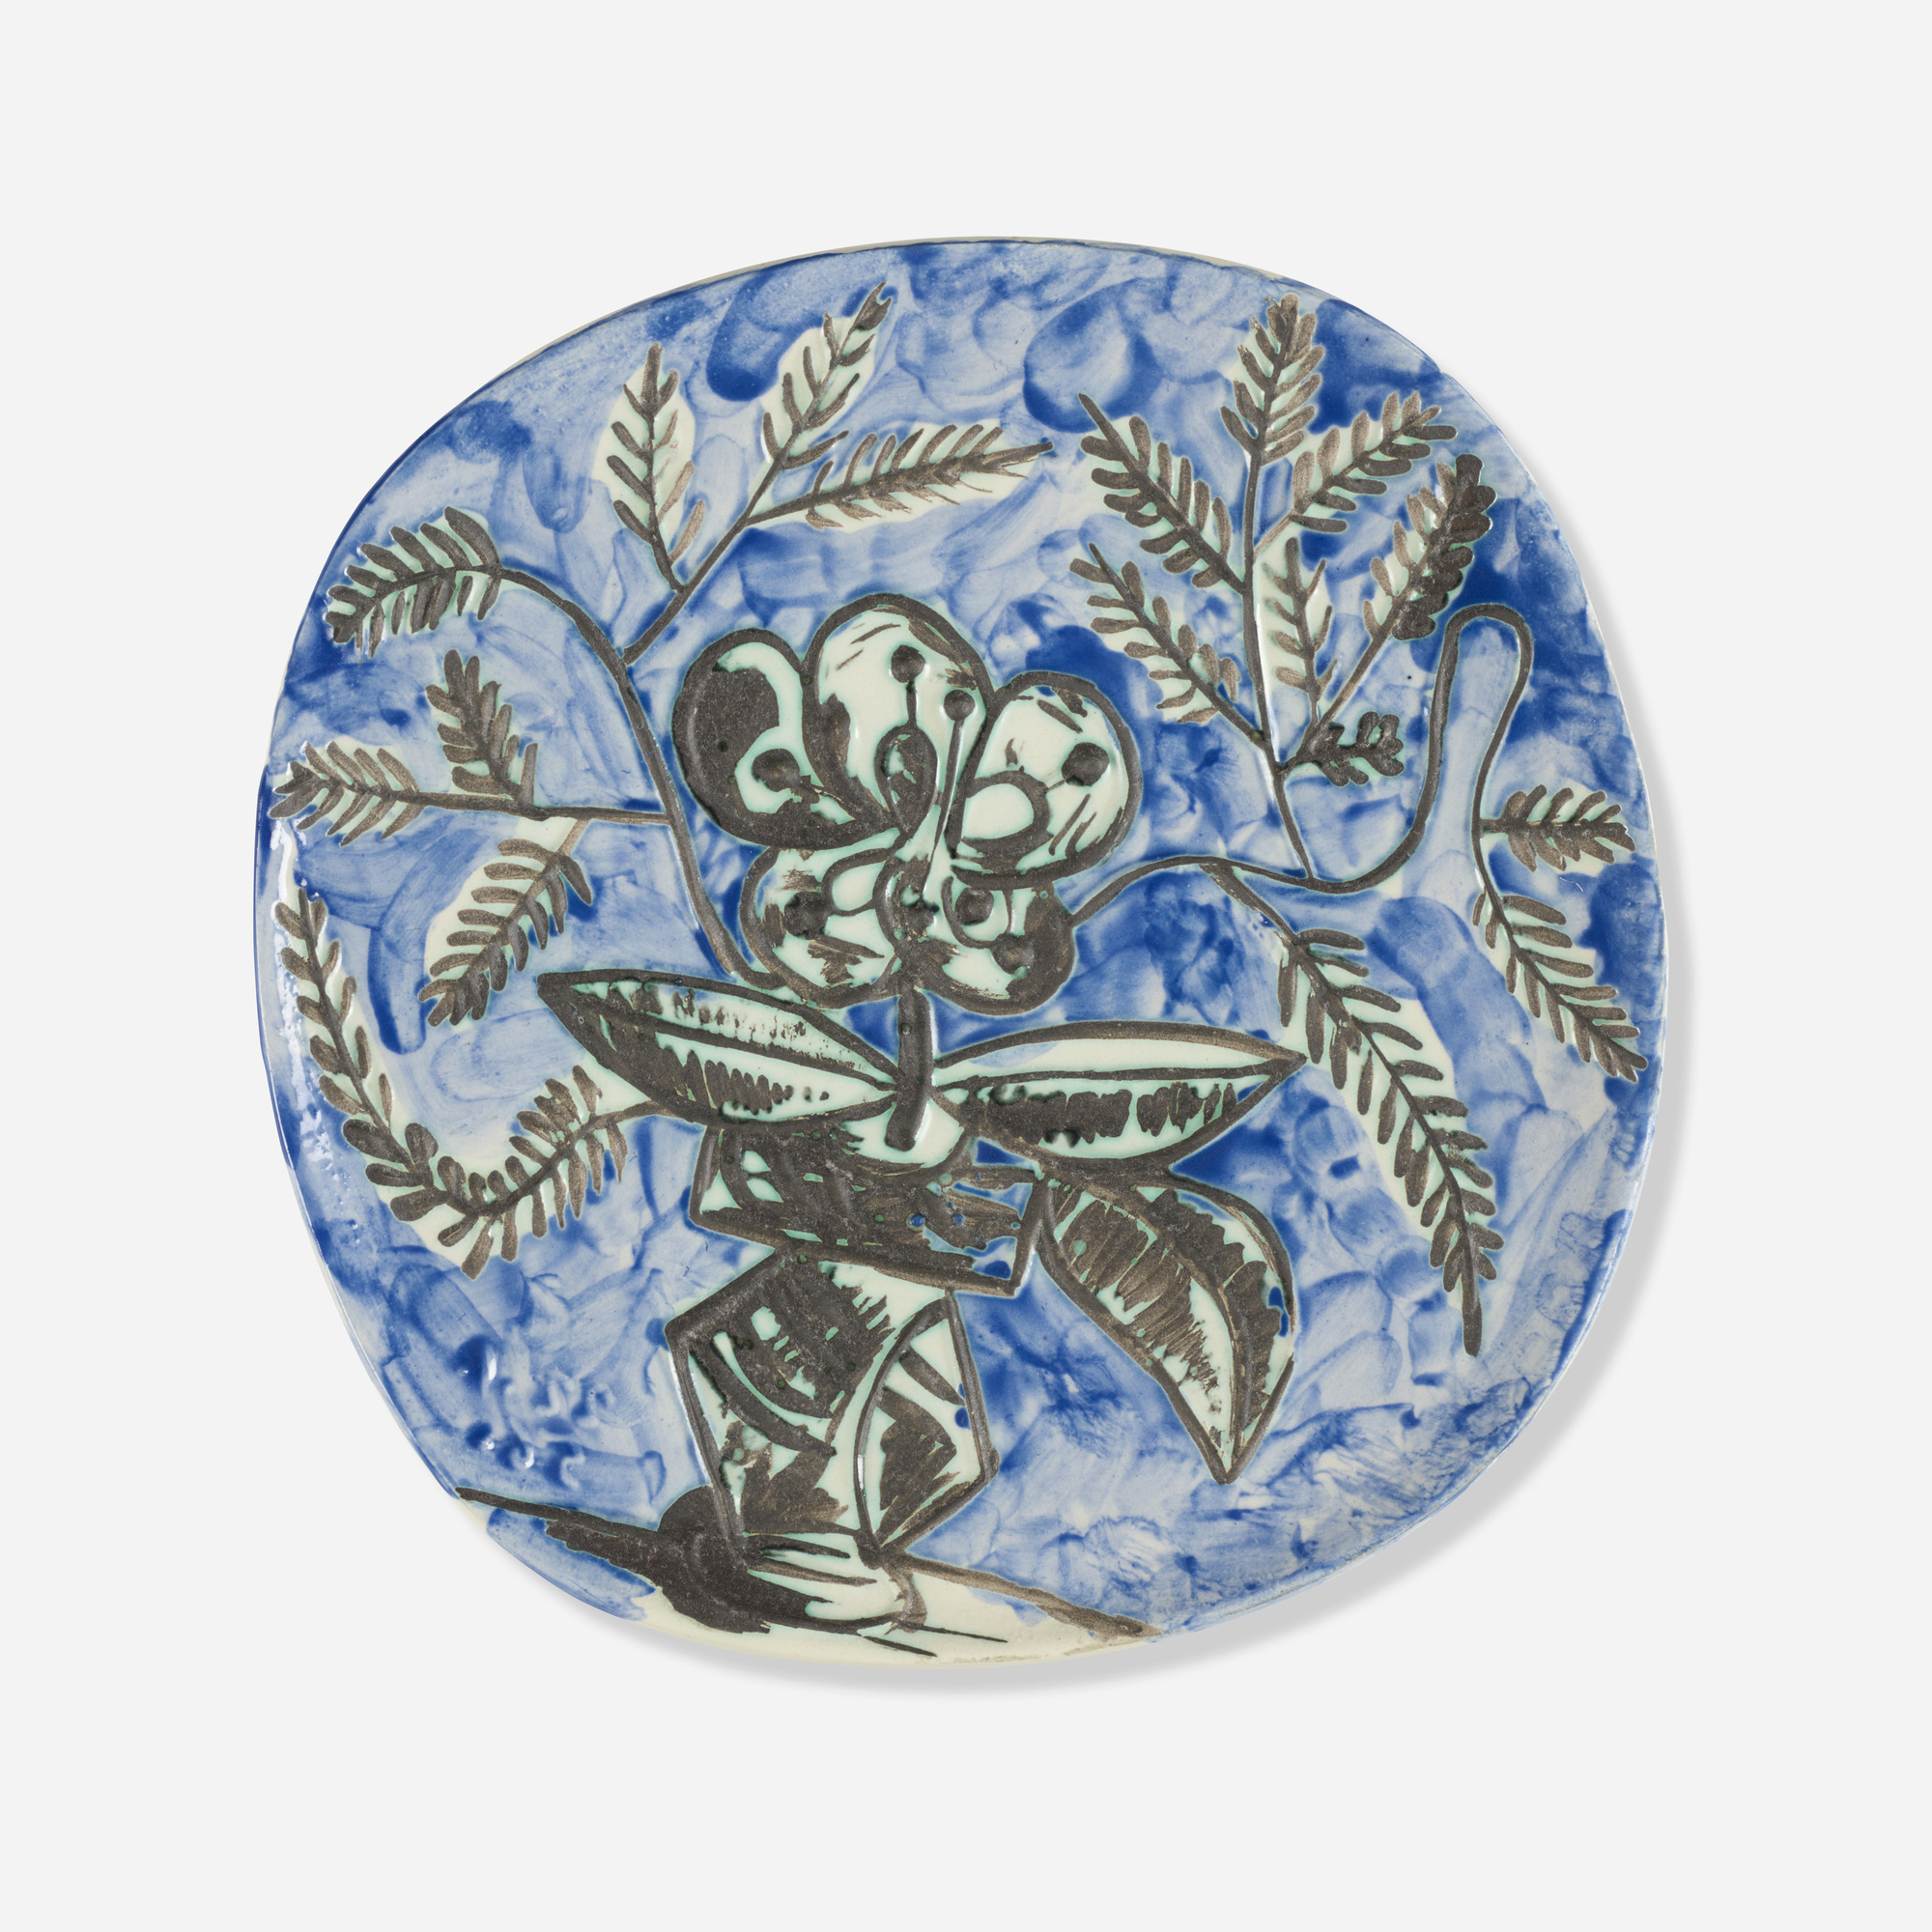 205: Pablo Picasso / Vase with Bunch plate (1 of 2)